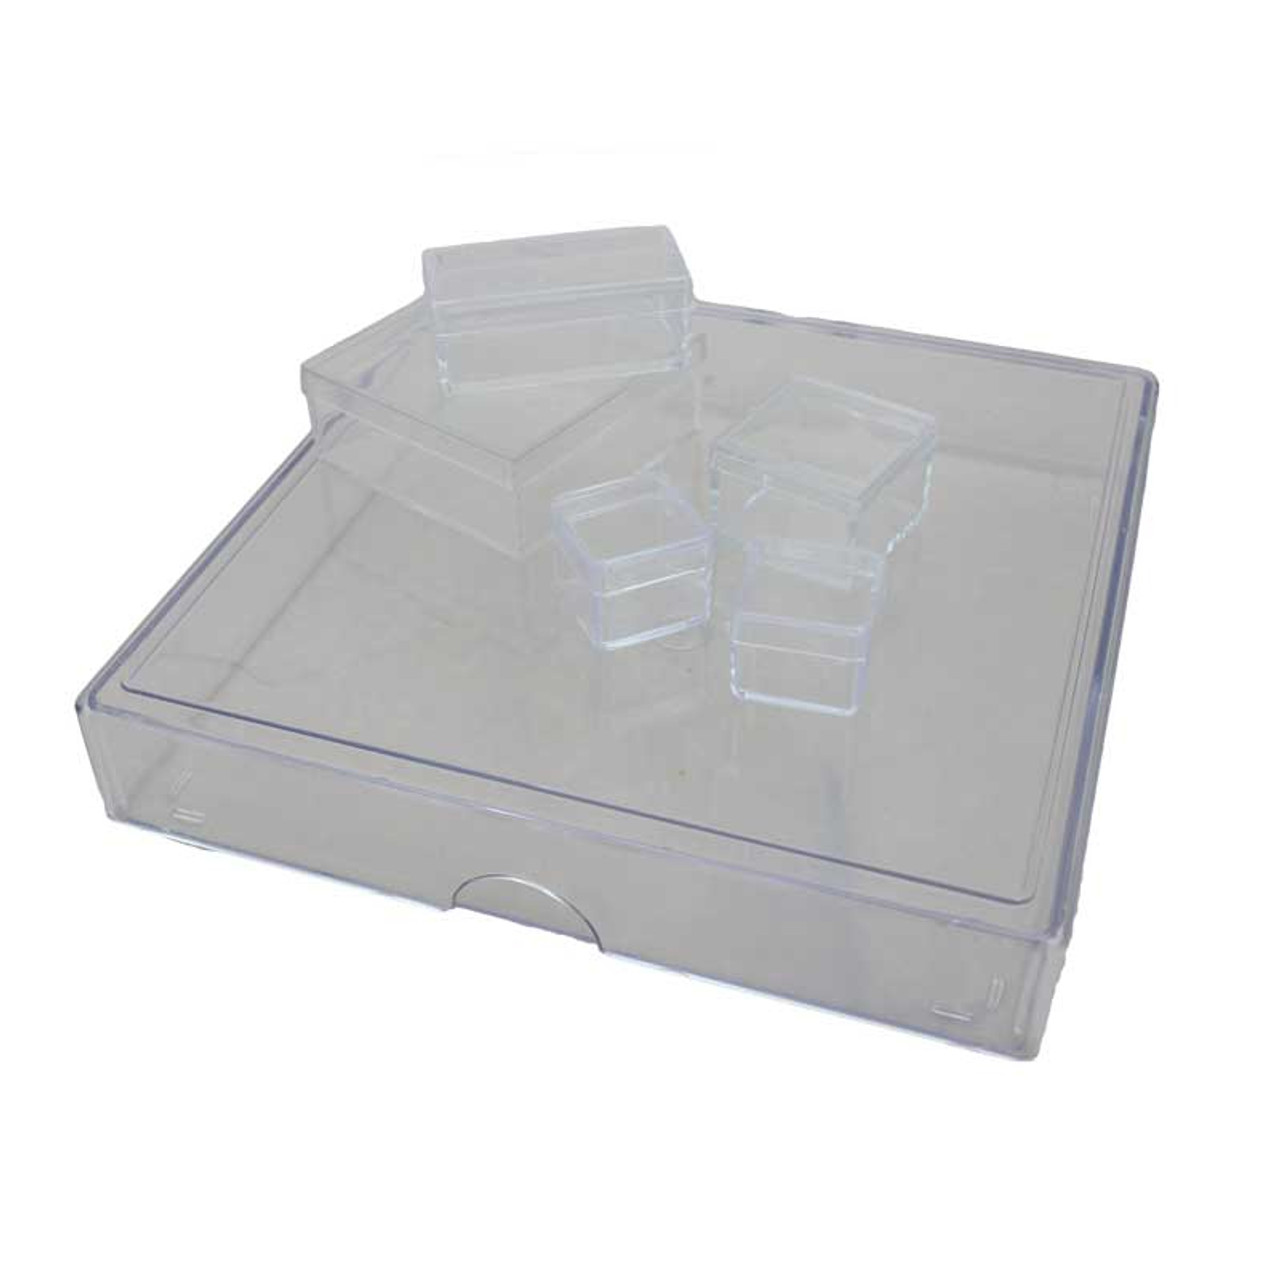 Clear Plastic Boxes Small Bench And Accessories Esslinger Co